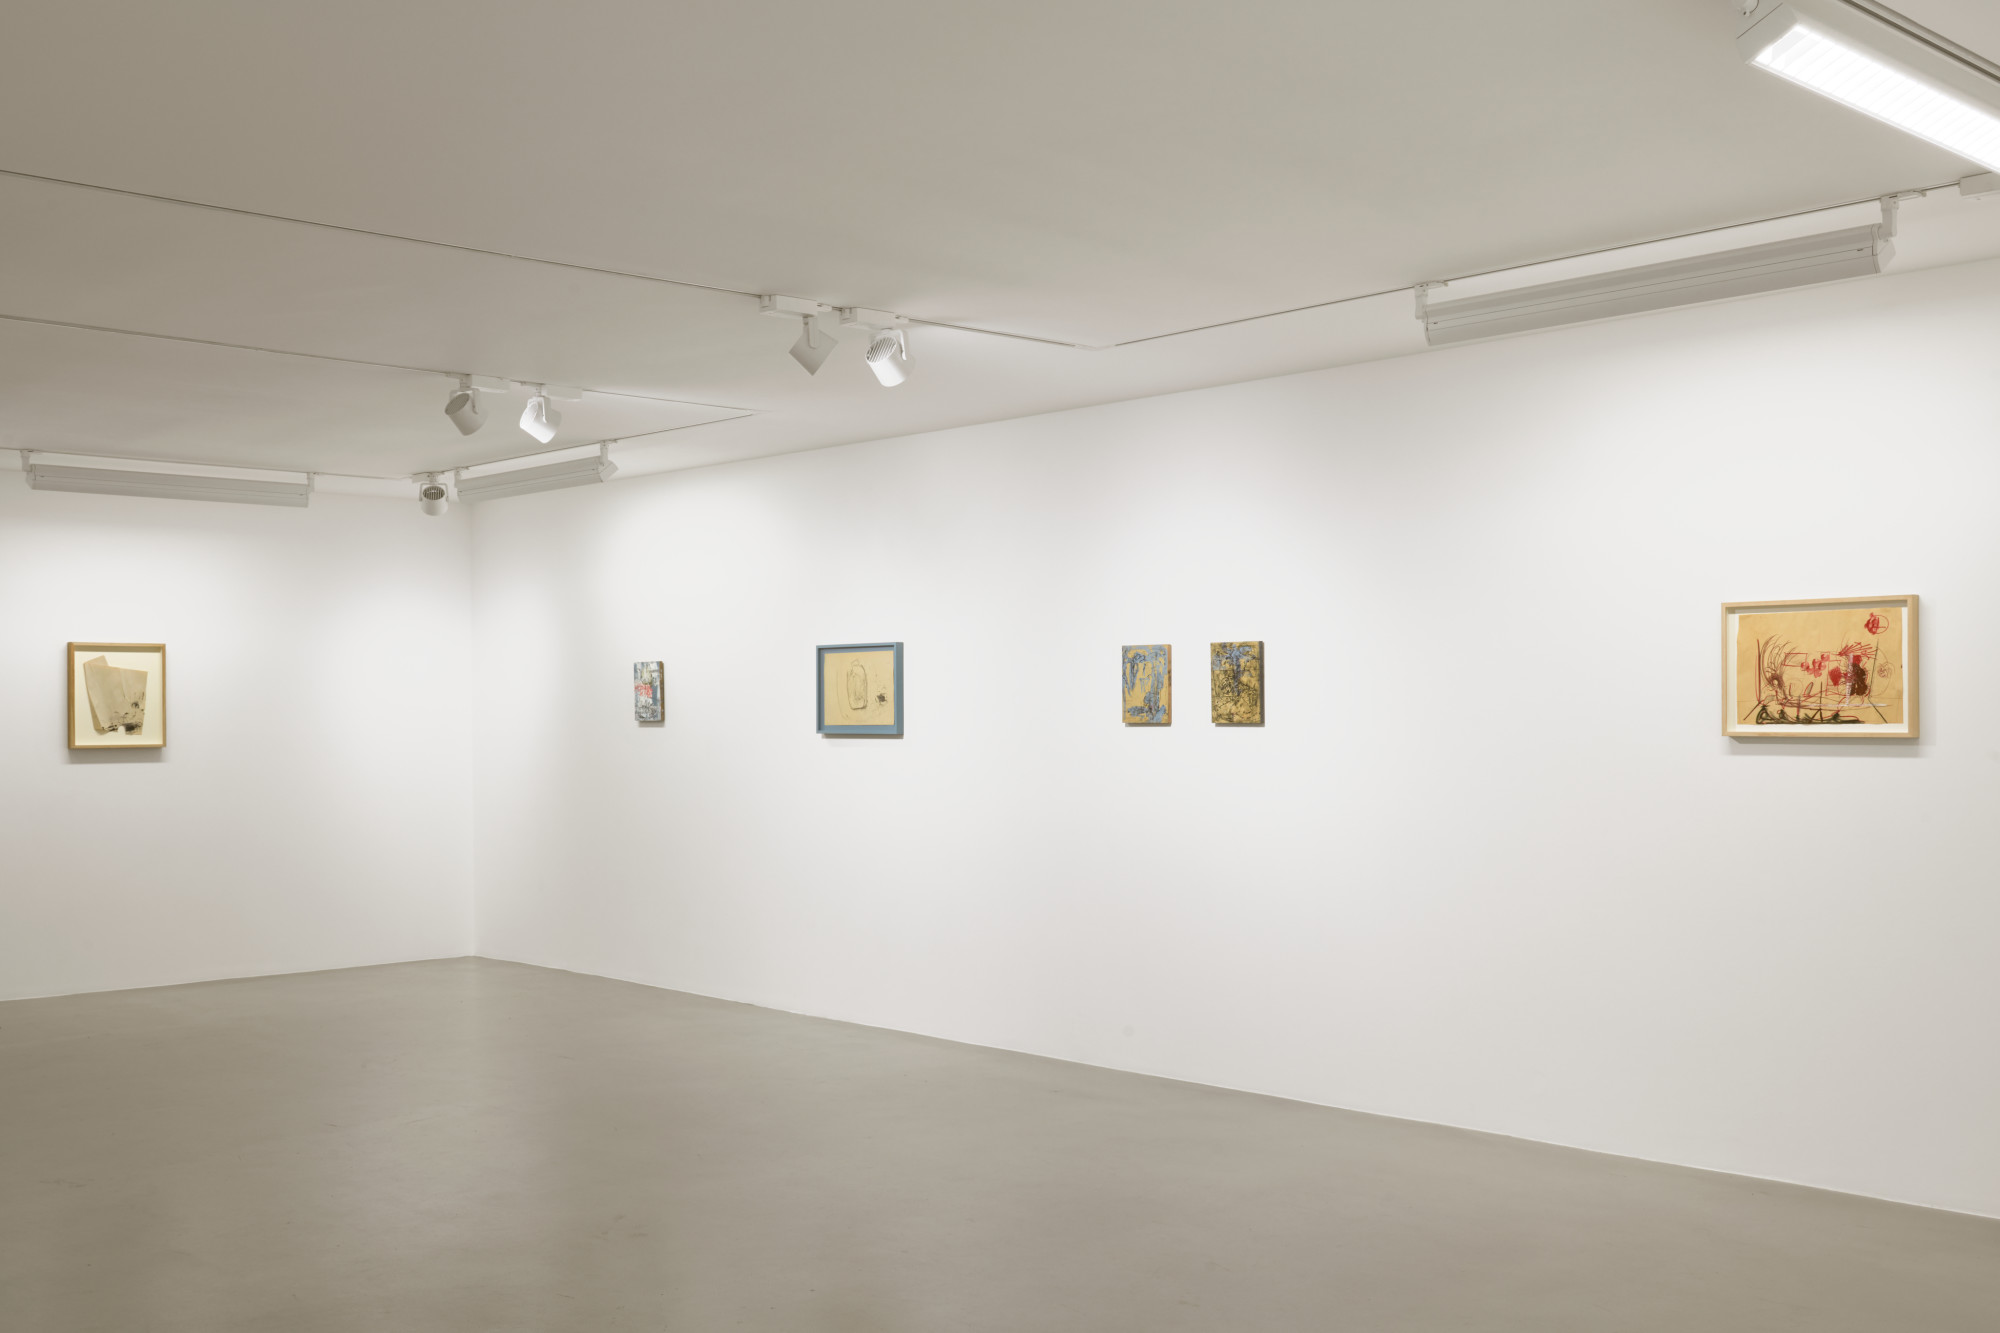 <p>Installation view, 2019.</p><p>Photo&#160;by&#160;Robert&#160;Glowacki</p>